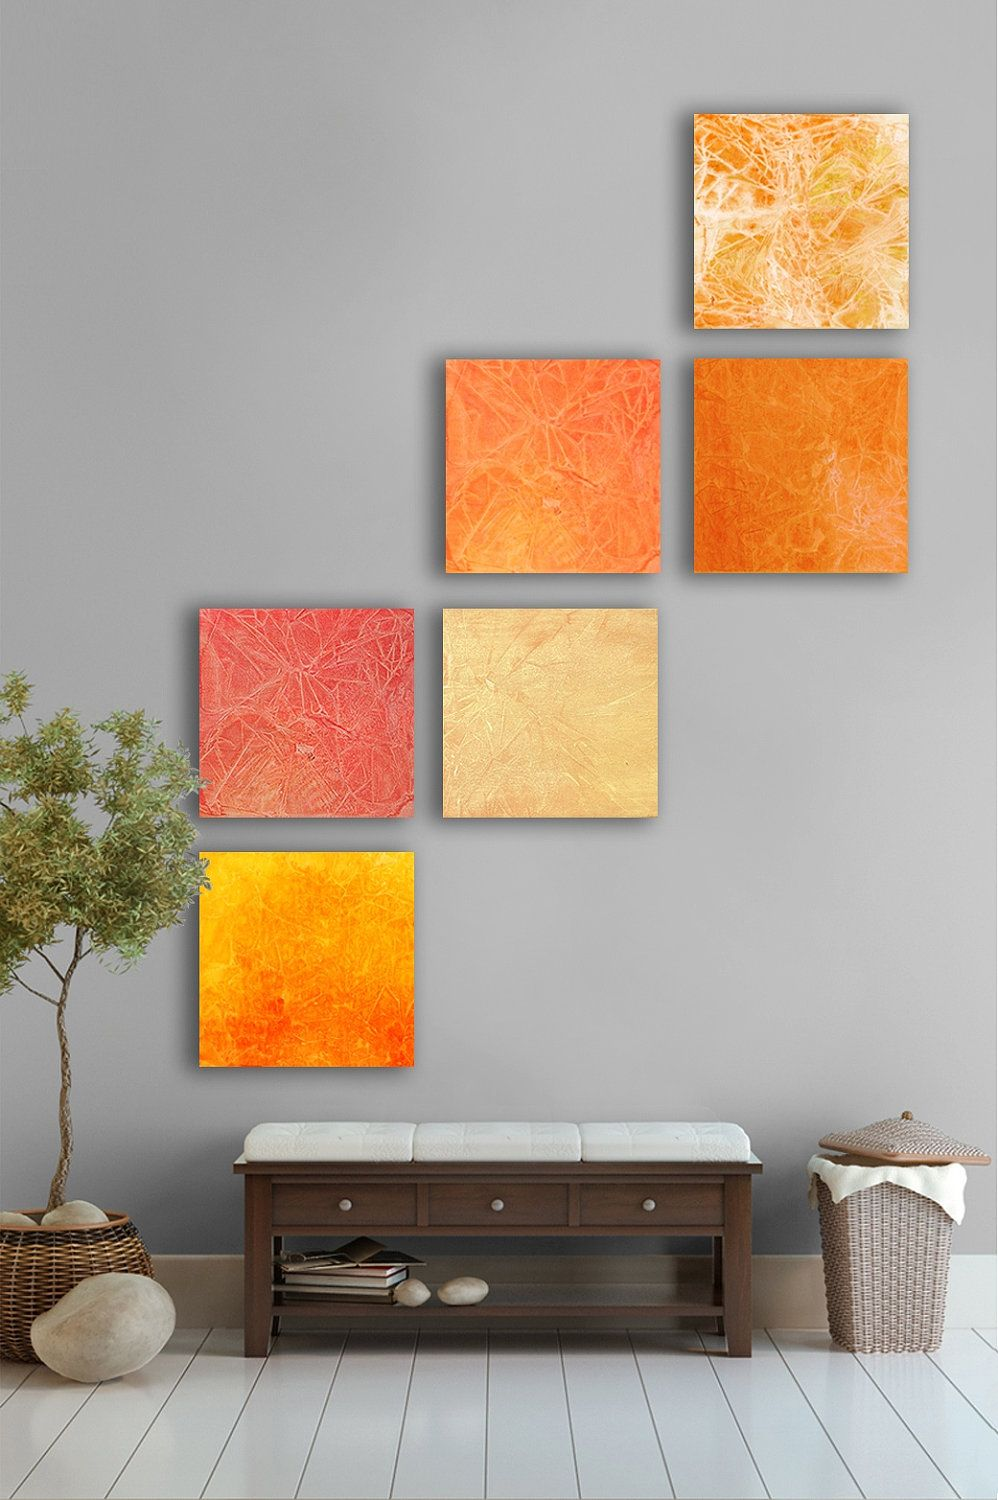 Summer Sunset Abstract Painting 8 Square Custom Abstract Wall Art Large Abstract Artwork Orange Yellow Re Orange Home Decor Decor Painted Furniture Colors